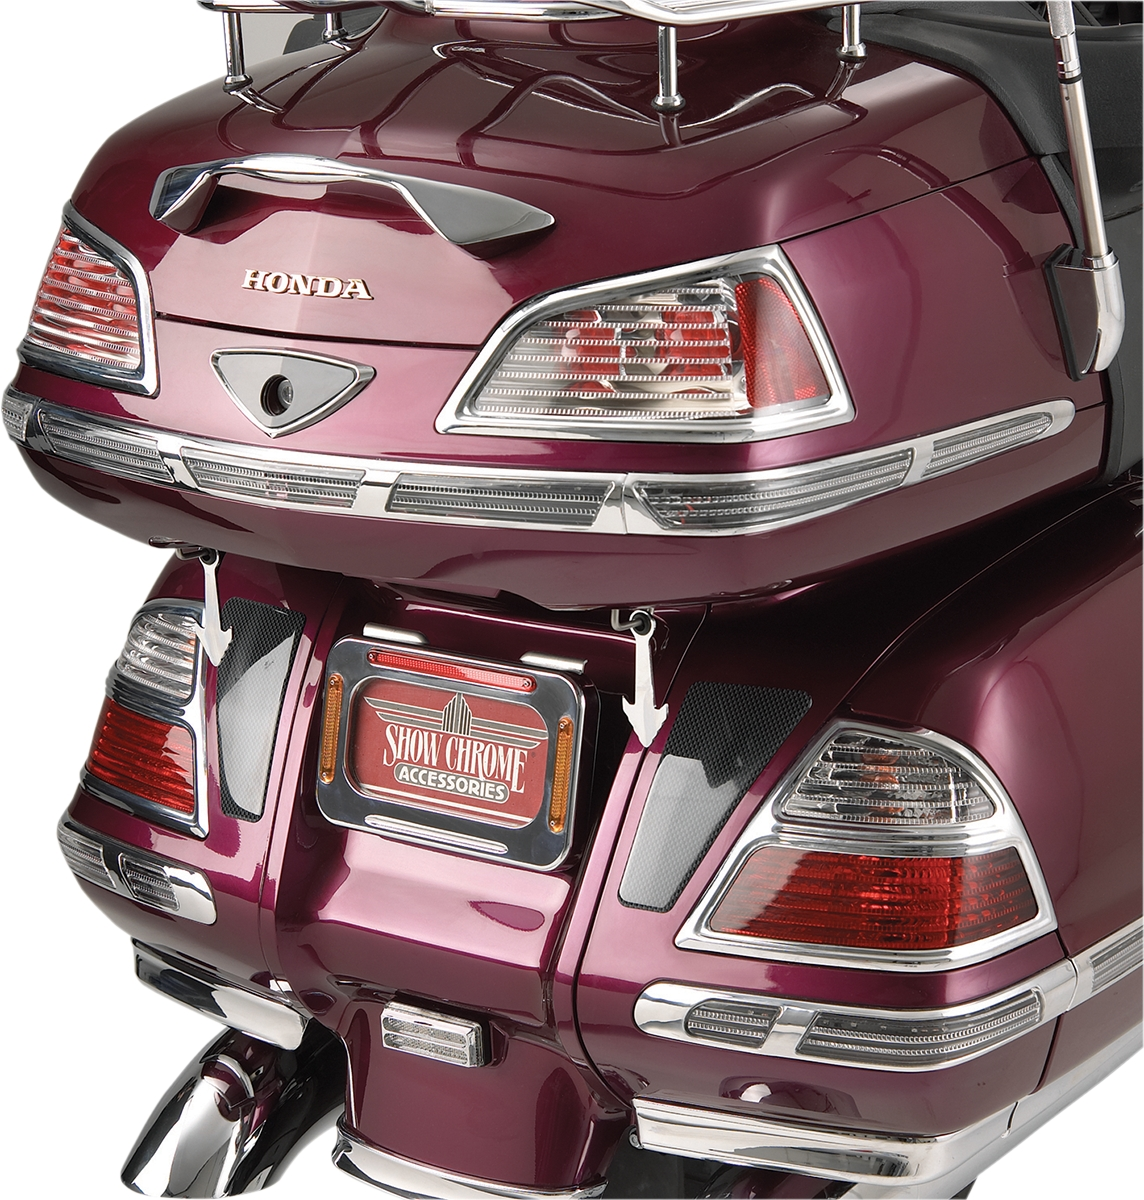 Show Chrome Molding Insert - Trunk Grille